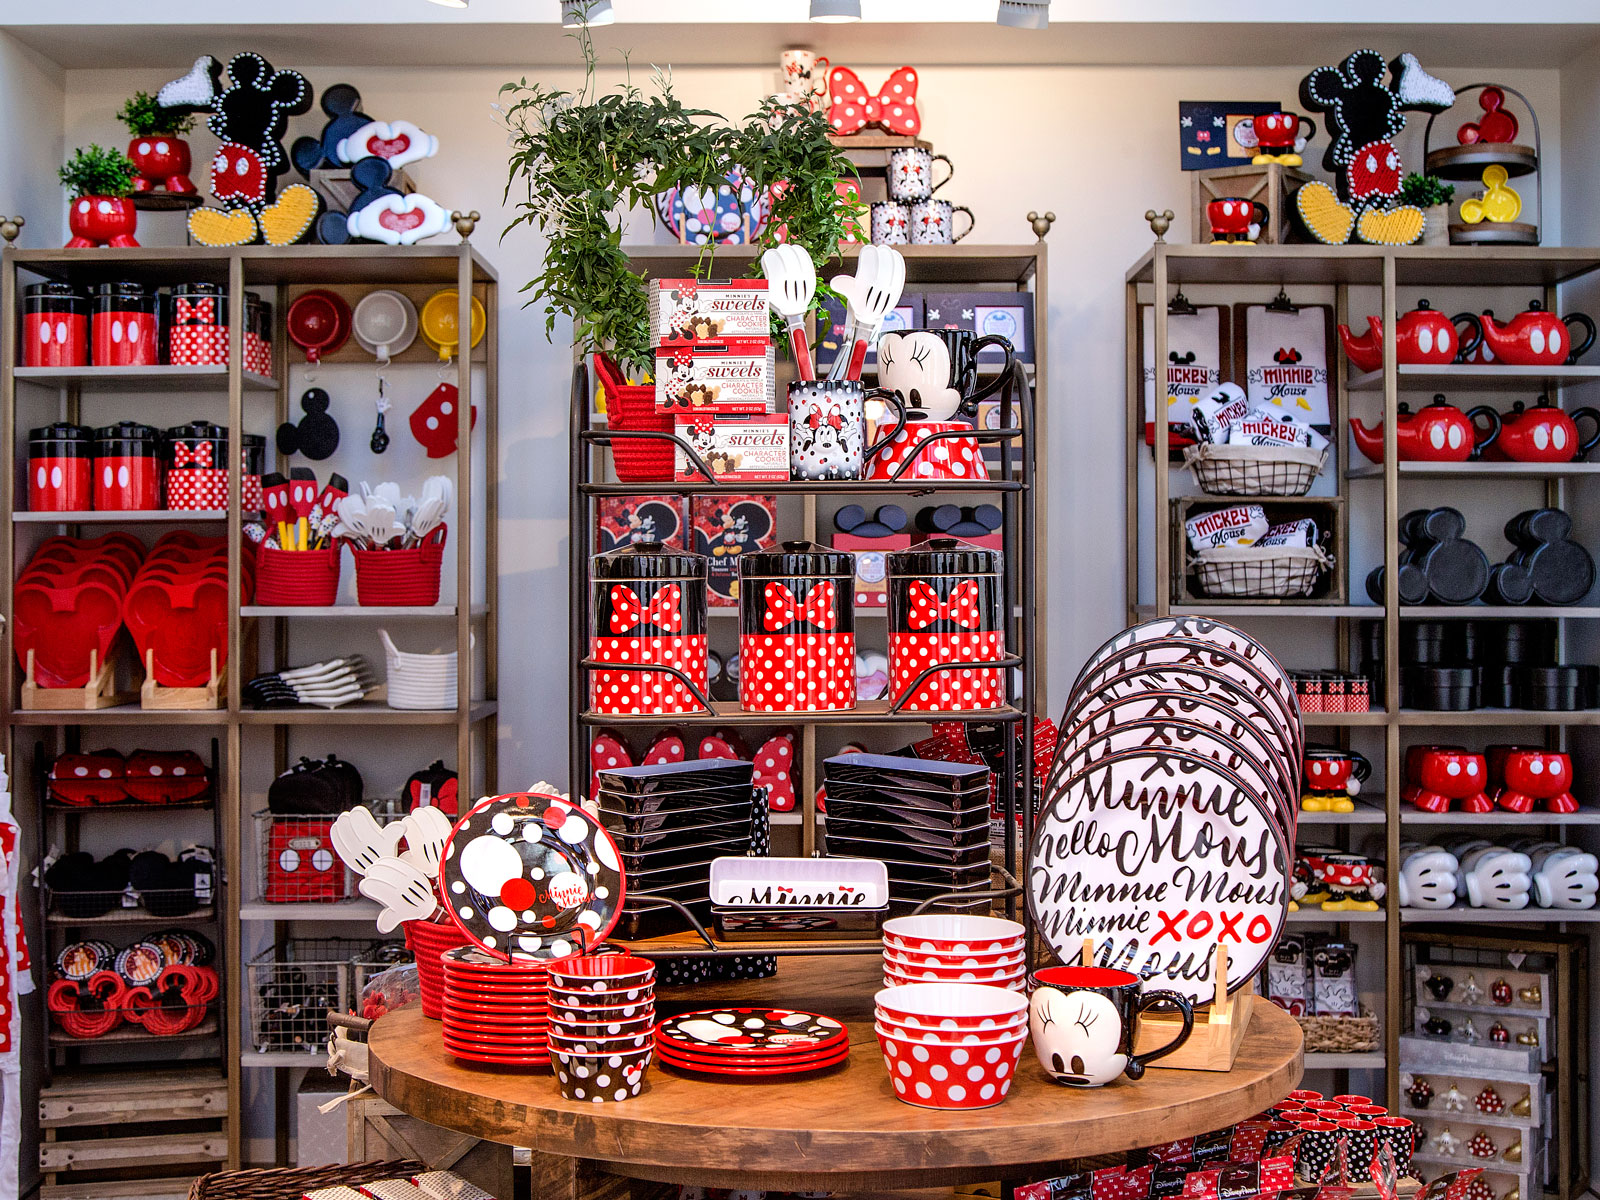 Minnie Mouse Collection at Disney Home